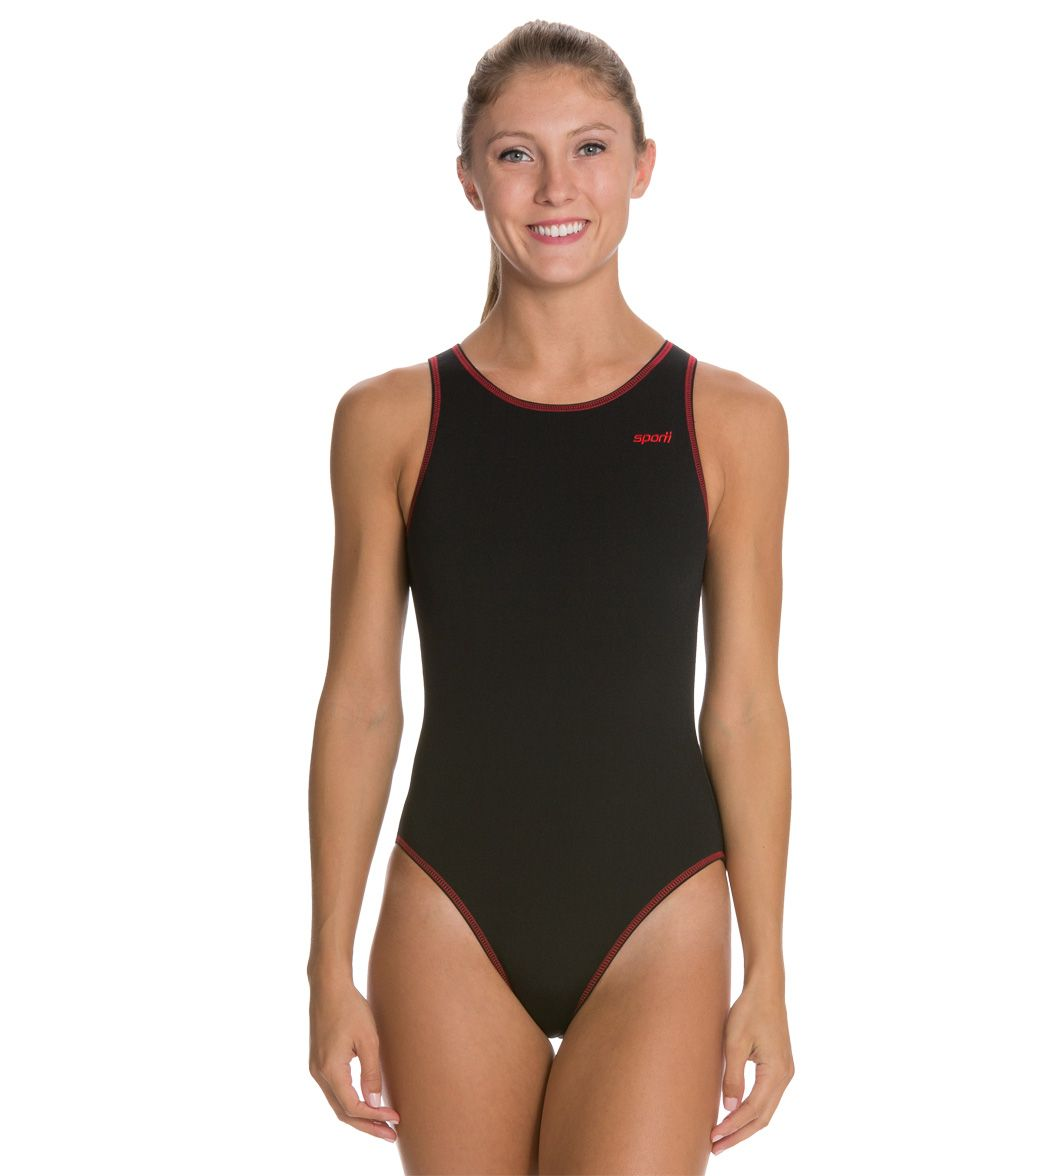 Sporti Women S Water Polo Suit Http Www Swimoutlet Com Productdetails Asp Click 4092977 Productcode 32127 Co Water Polo Suits Women S Water Polo One Piece